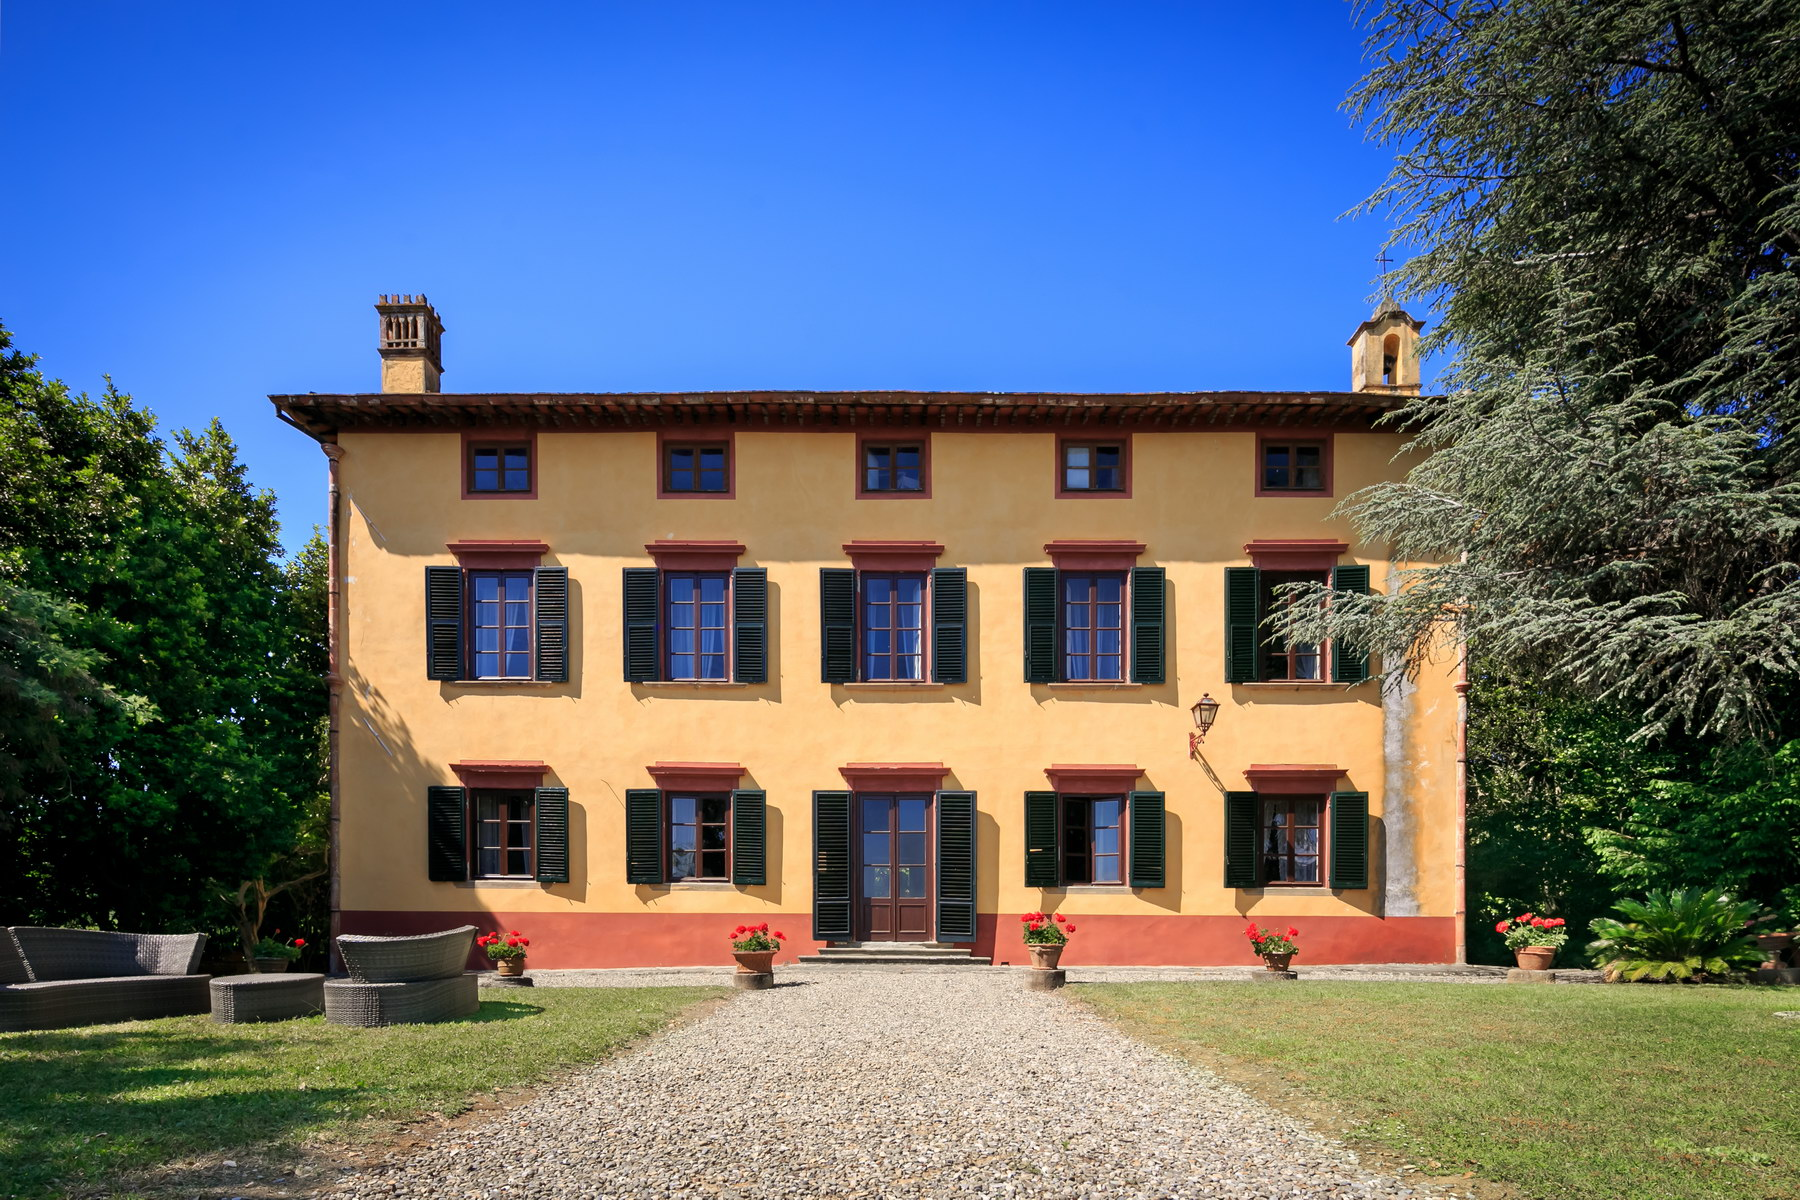 Land for Sale at Beautiful 17th century villa and vineyard near Lucca Capannori, Lucca Italy